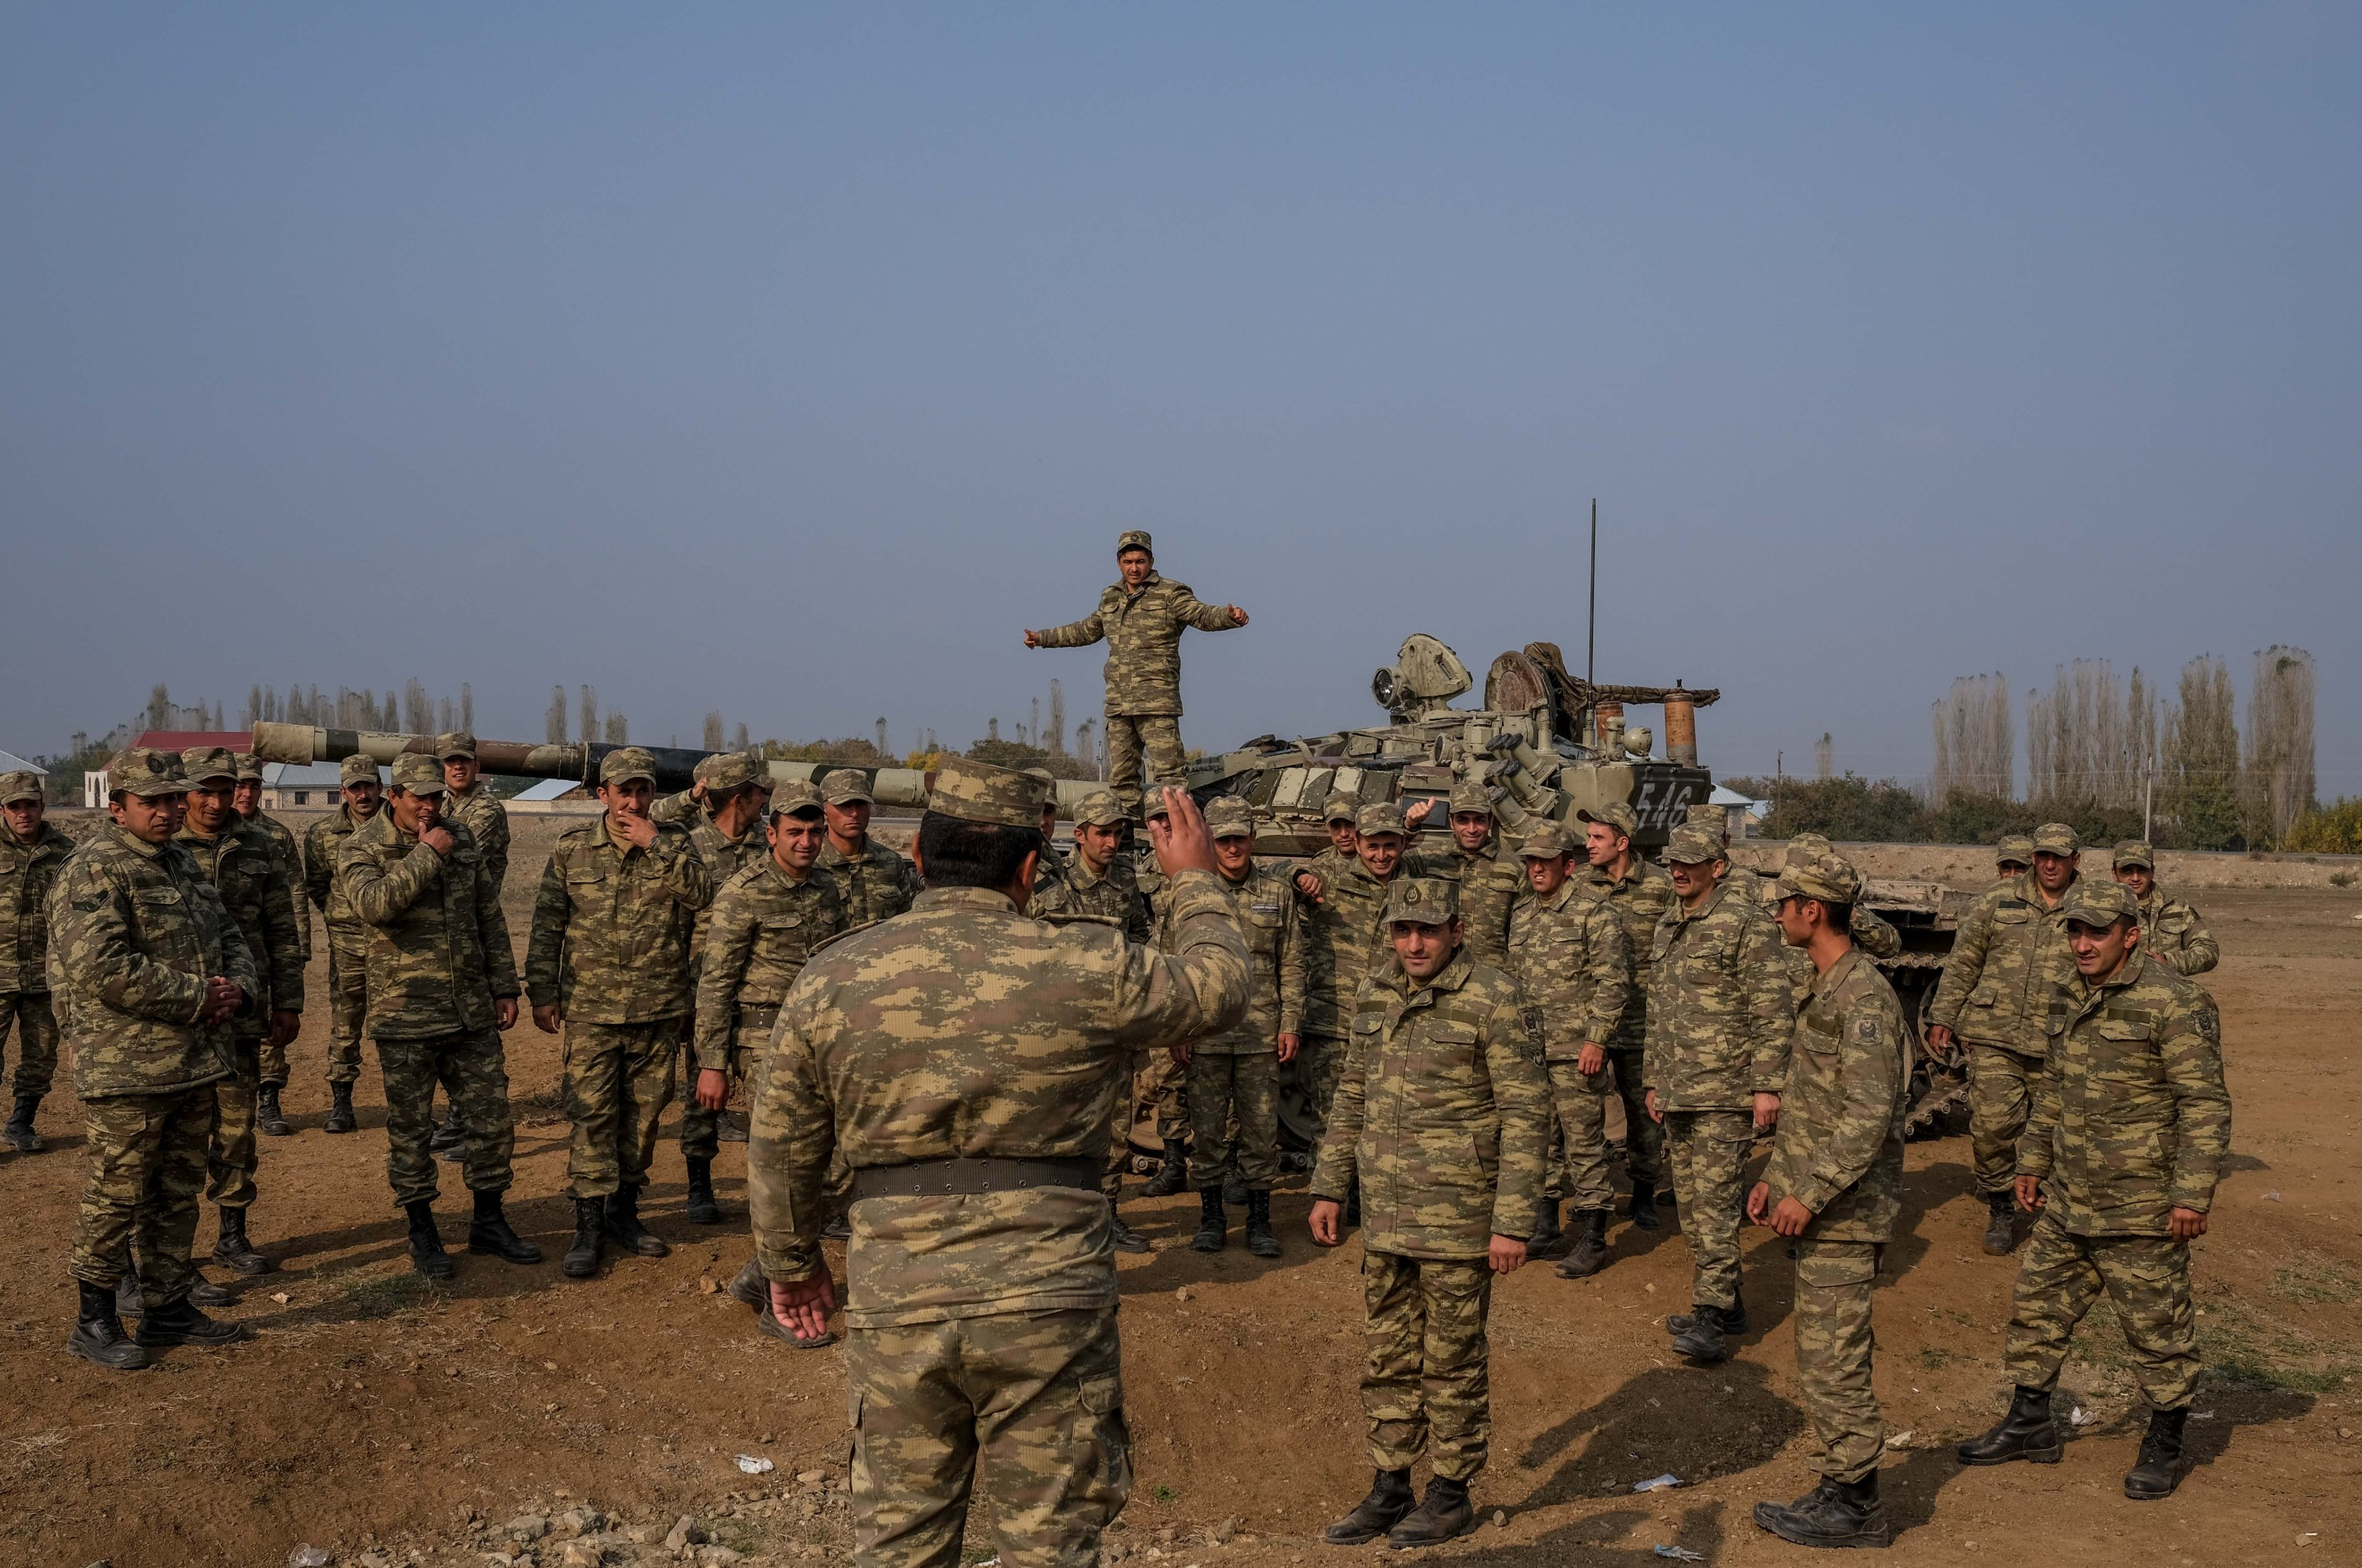 Soldiers gather during the Karabakh War to liberate Azerbaijani lands that are occupied by Armenia for 30 years, in Nagorno-Karabakh, Azerbaijan on Nov. 15, 2020. (Sabah Archive Photo)